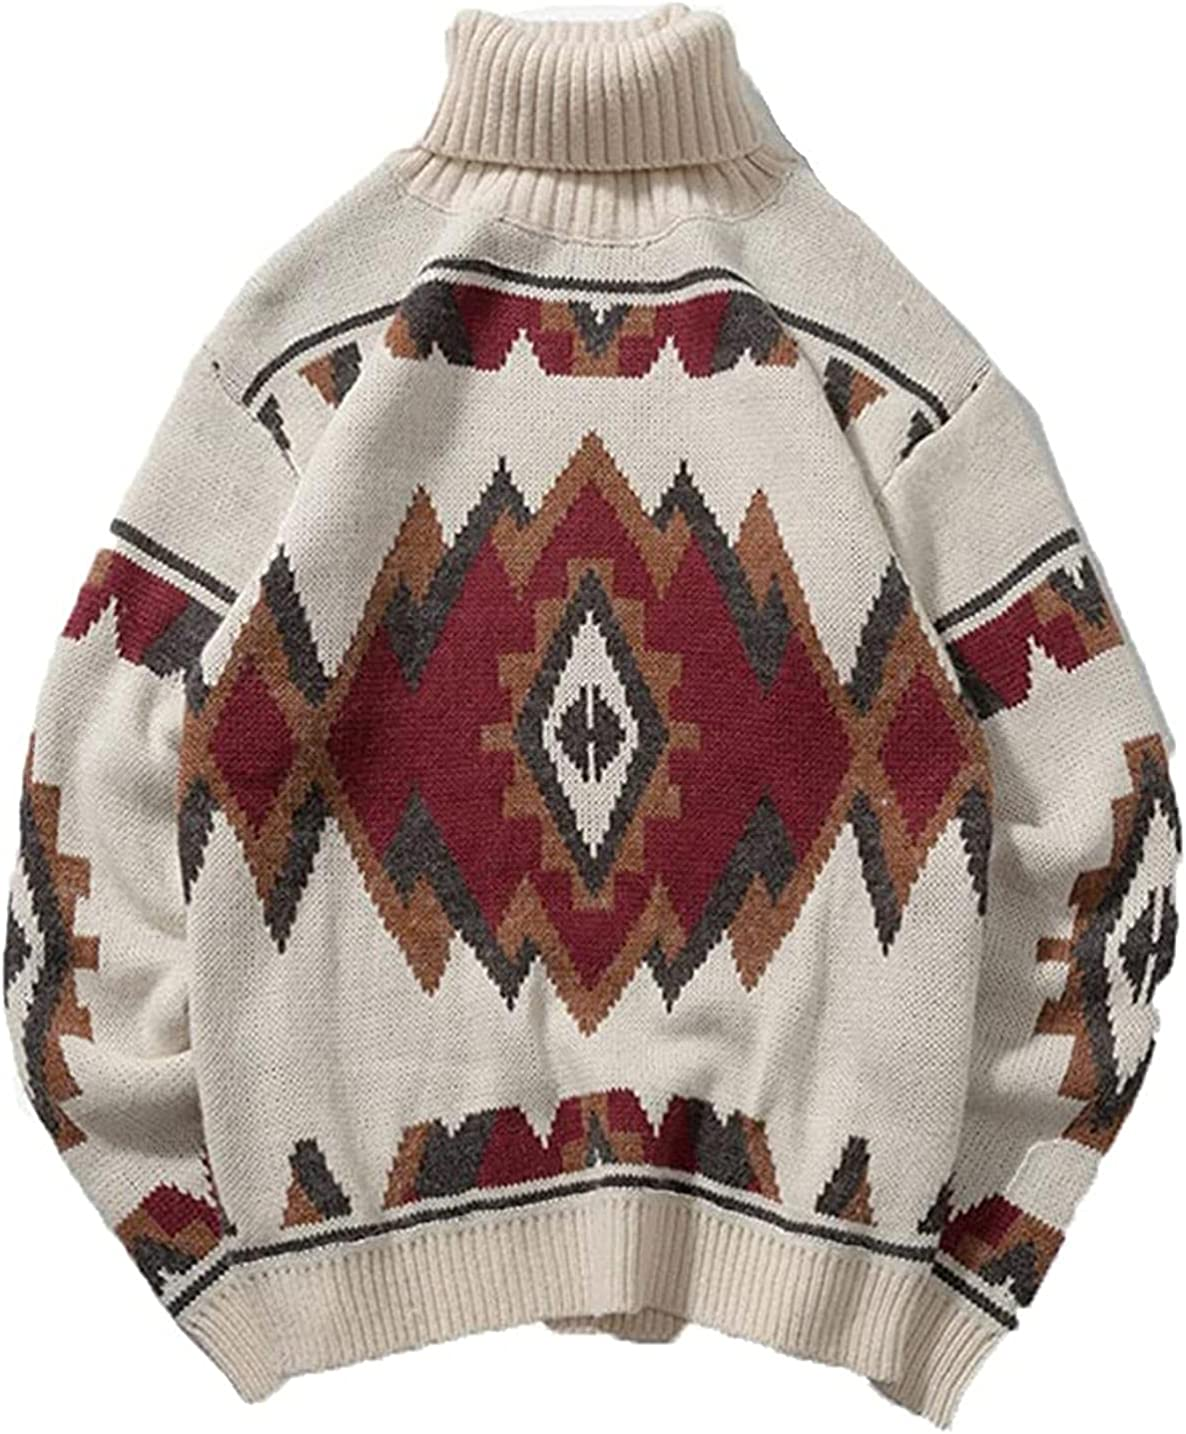 Turtleneck Men's Sweater Autumn Print Knitted Sweaters Casual Loose Vintage Pullover